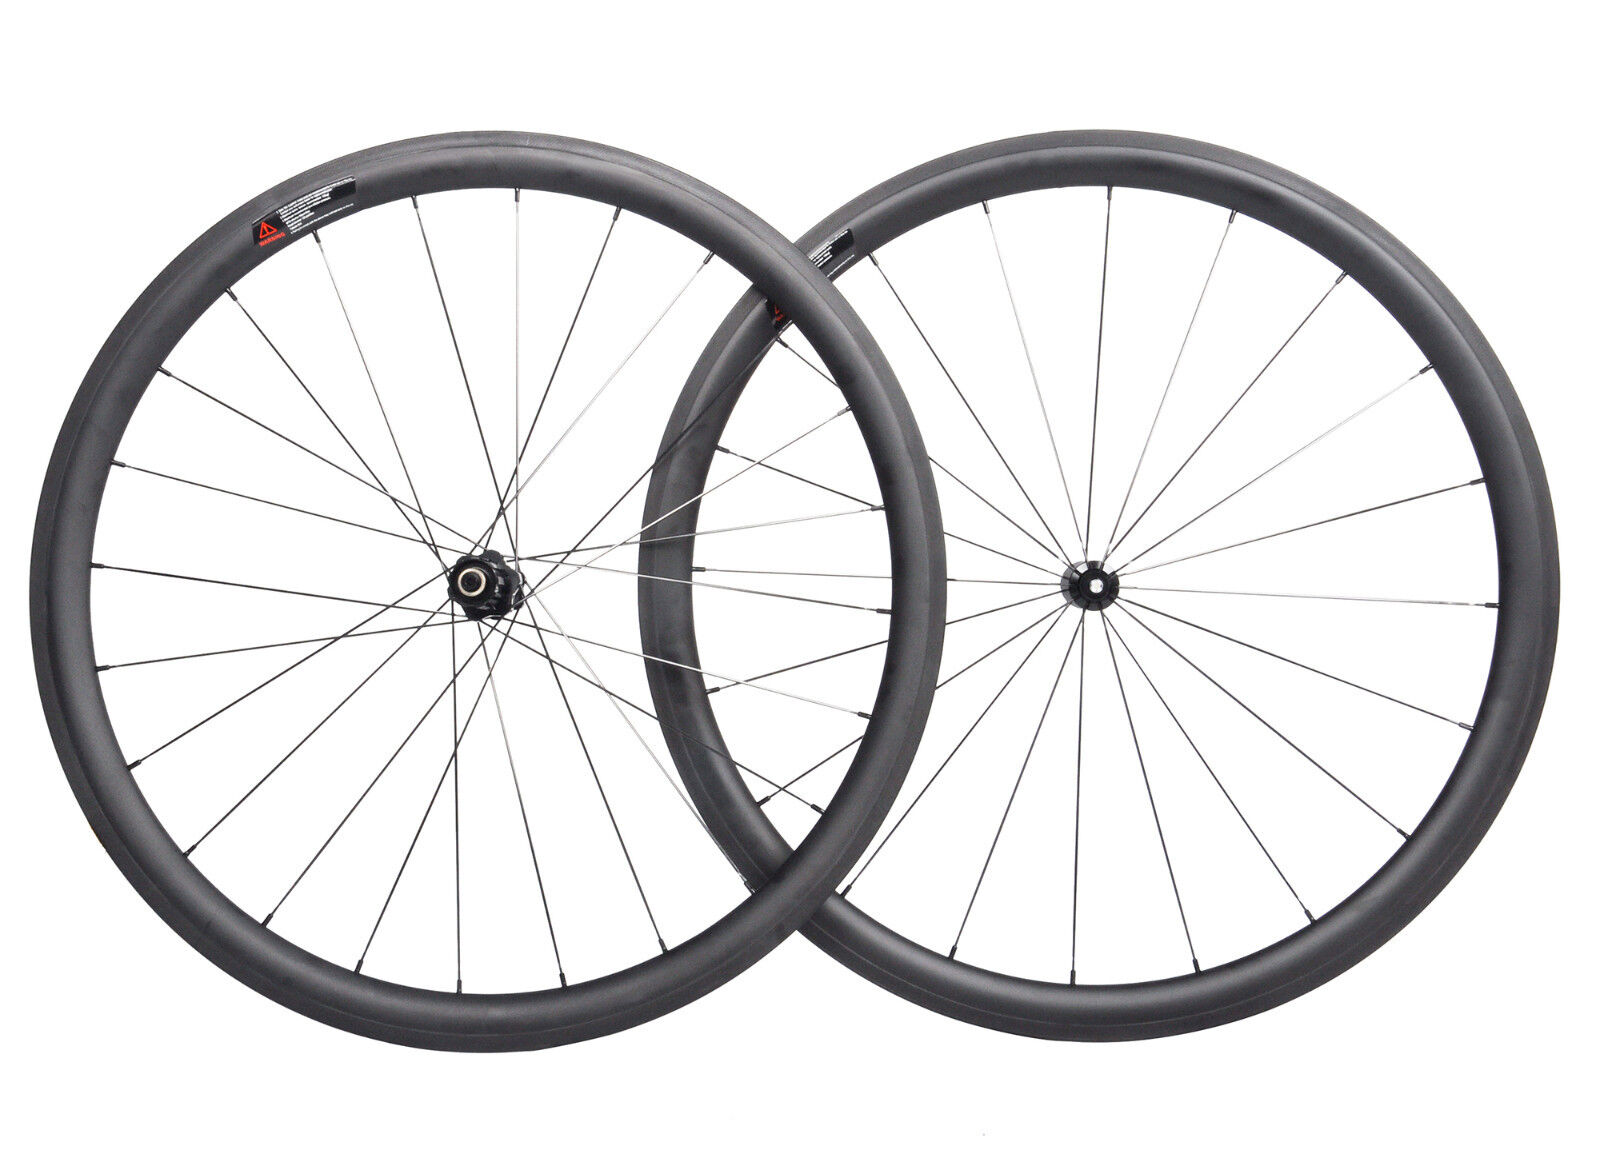 DT Swiss 350 Carbon Wheel 38mm Clincher Road Bike Tubeless 700C UD Matt Rim 25mm